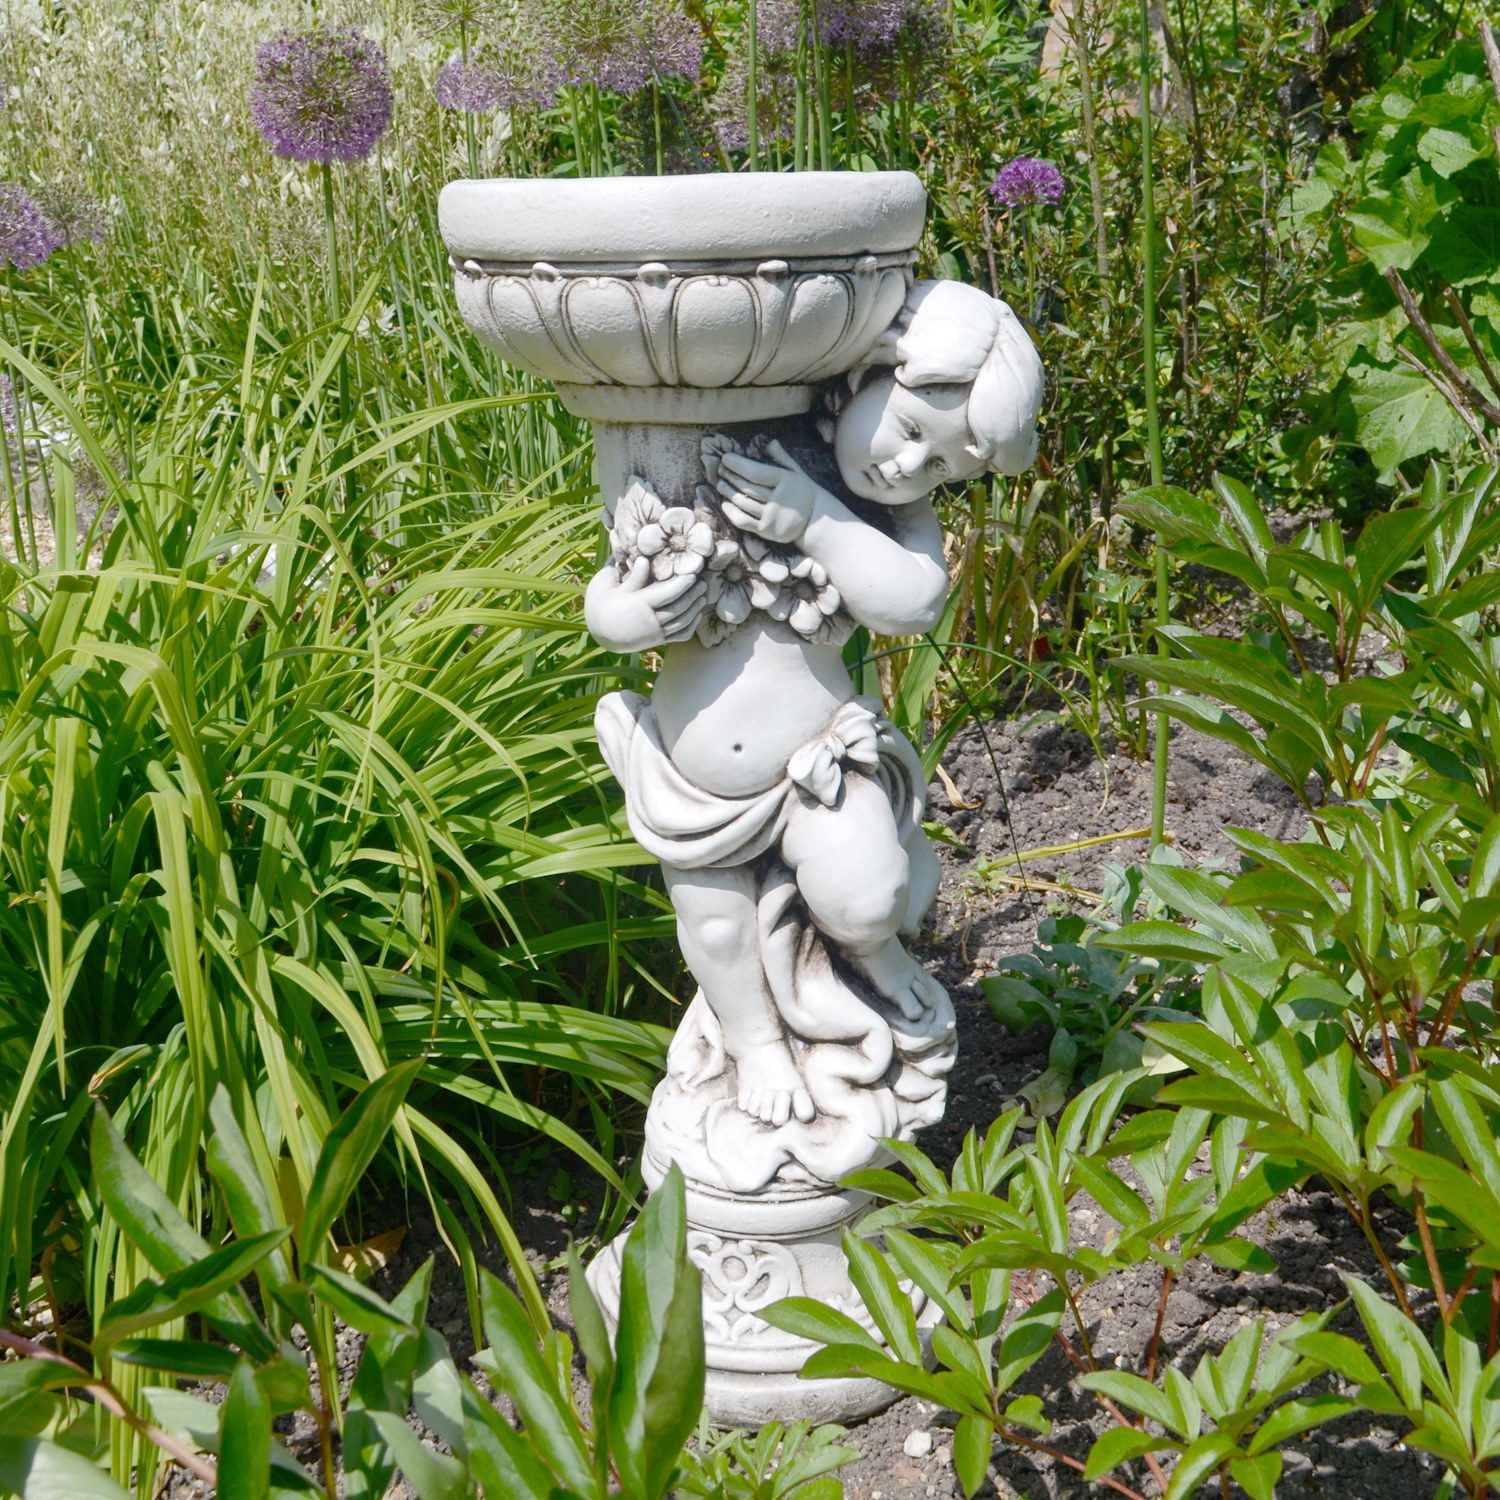 James boy planter statue